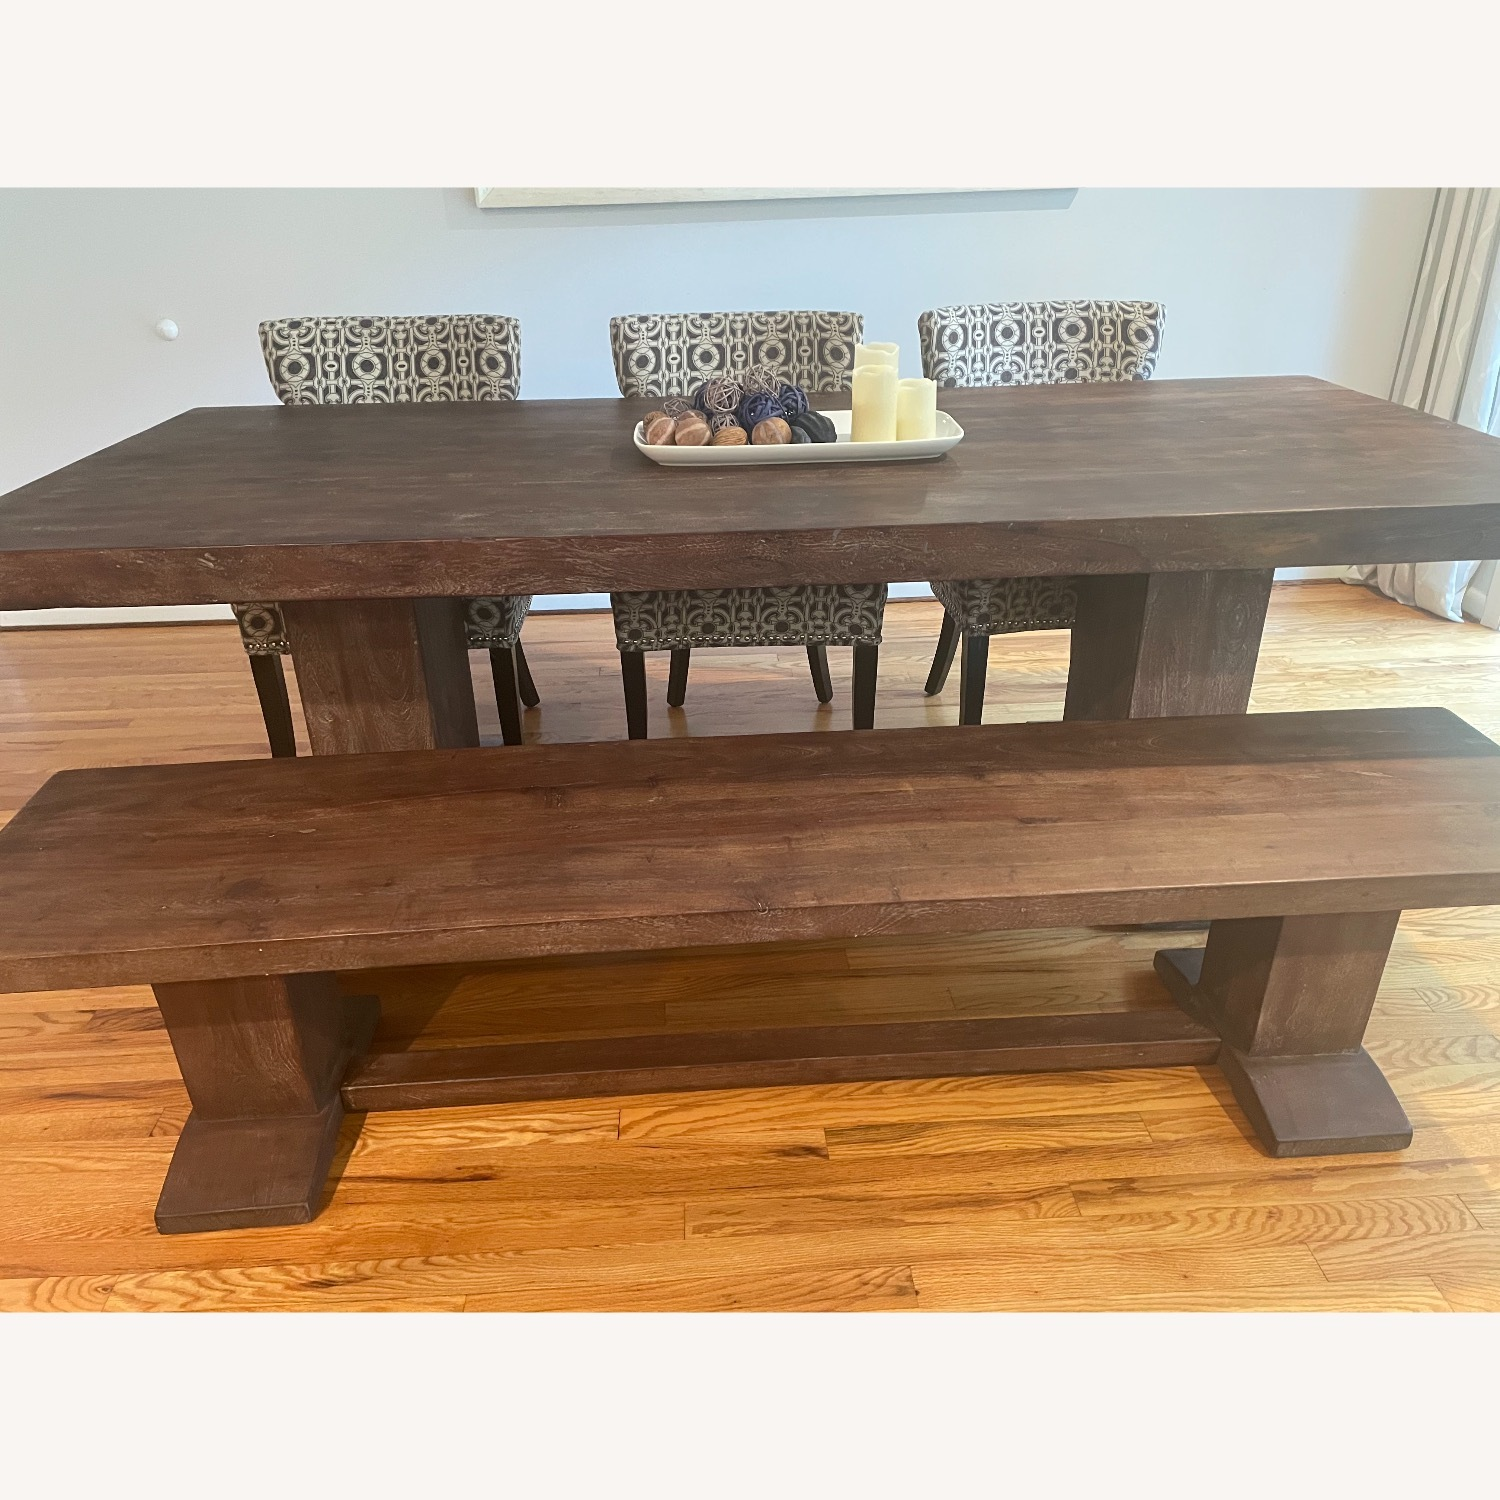 94-Inch Solid Acacia Wood Dining Table & Bench - image-2